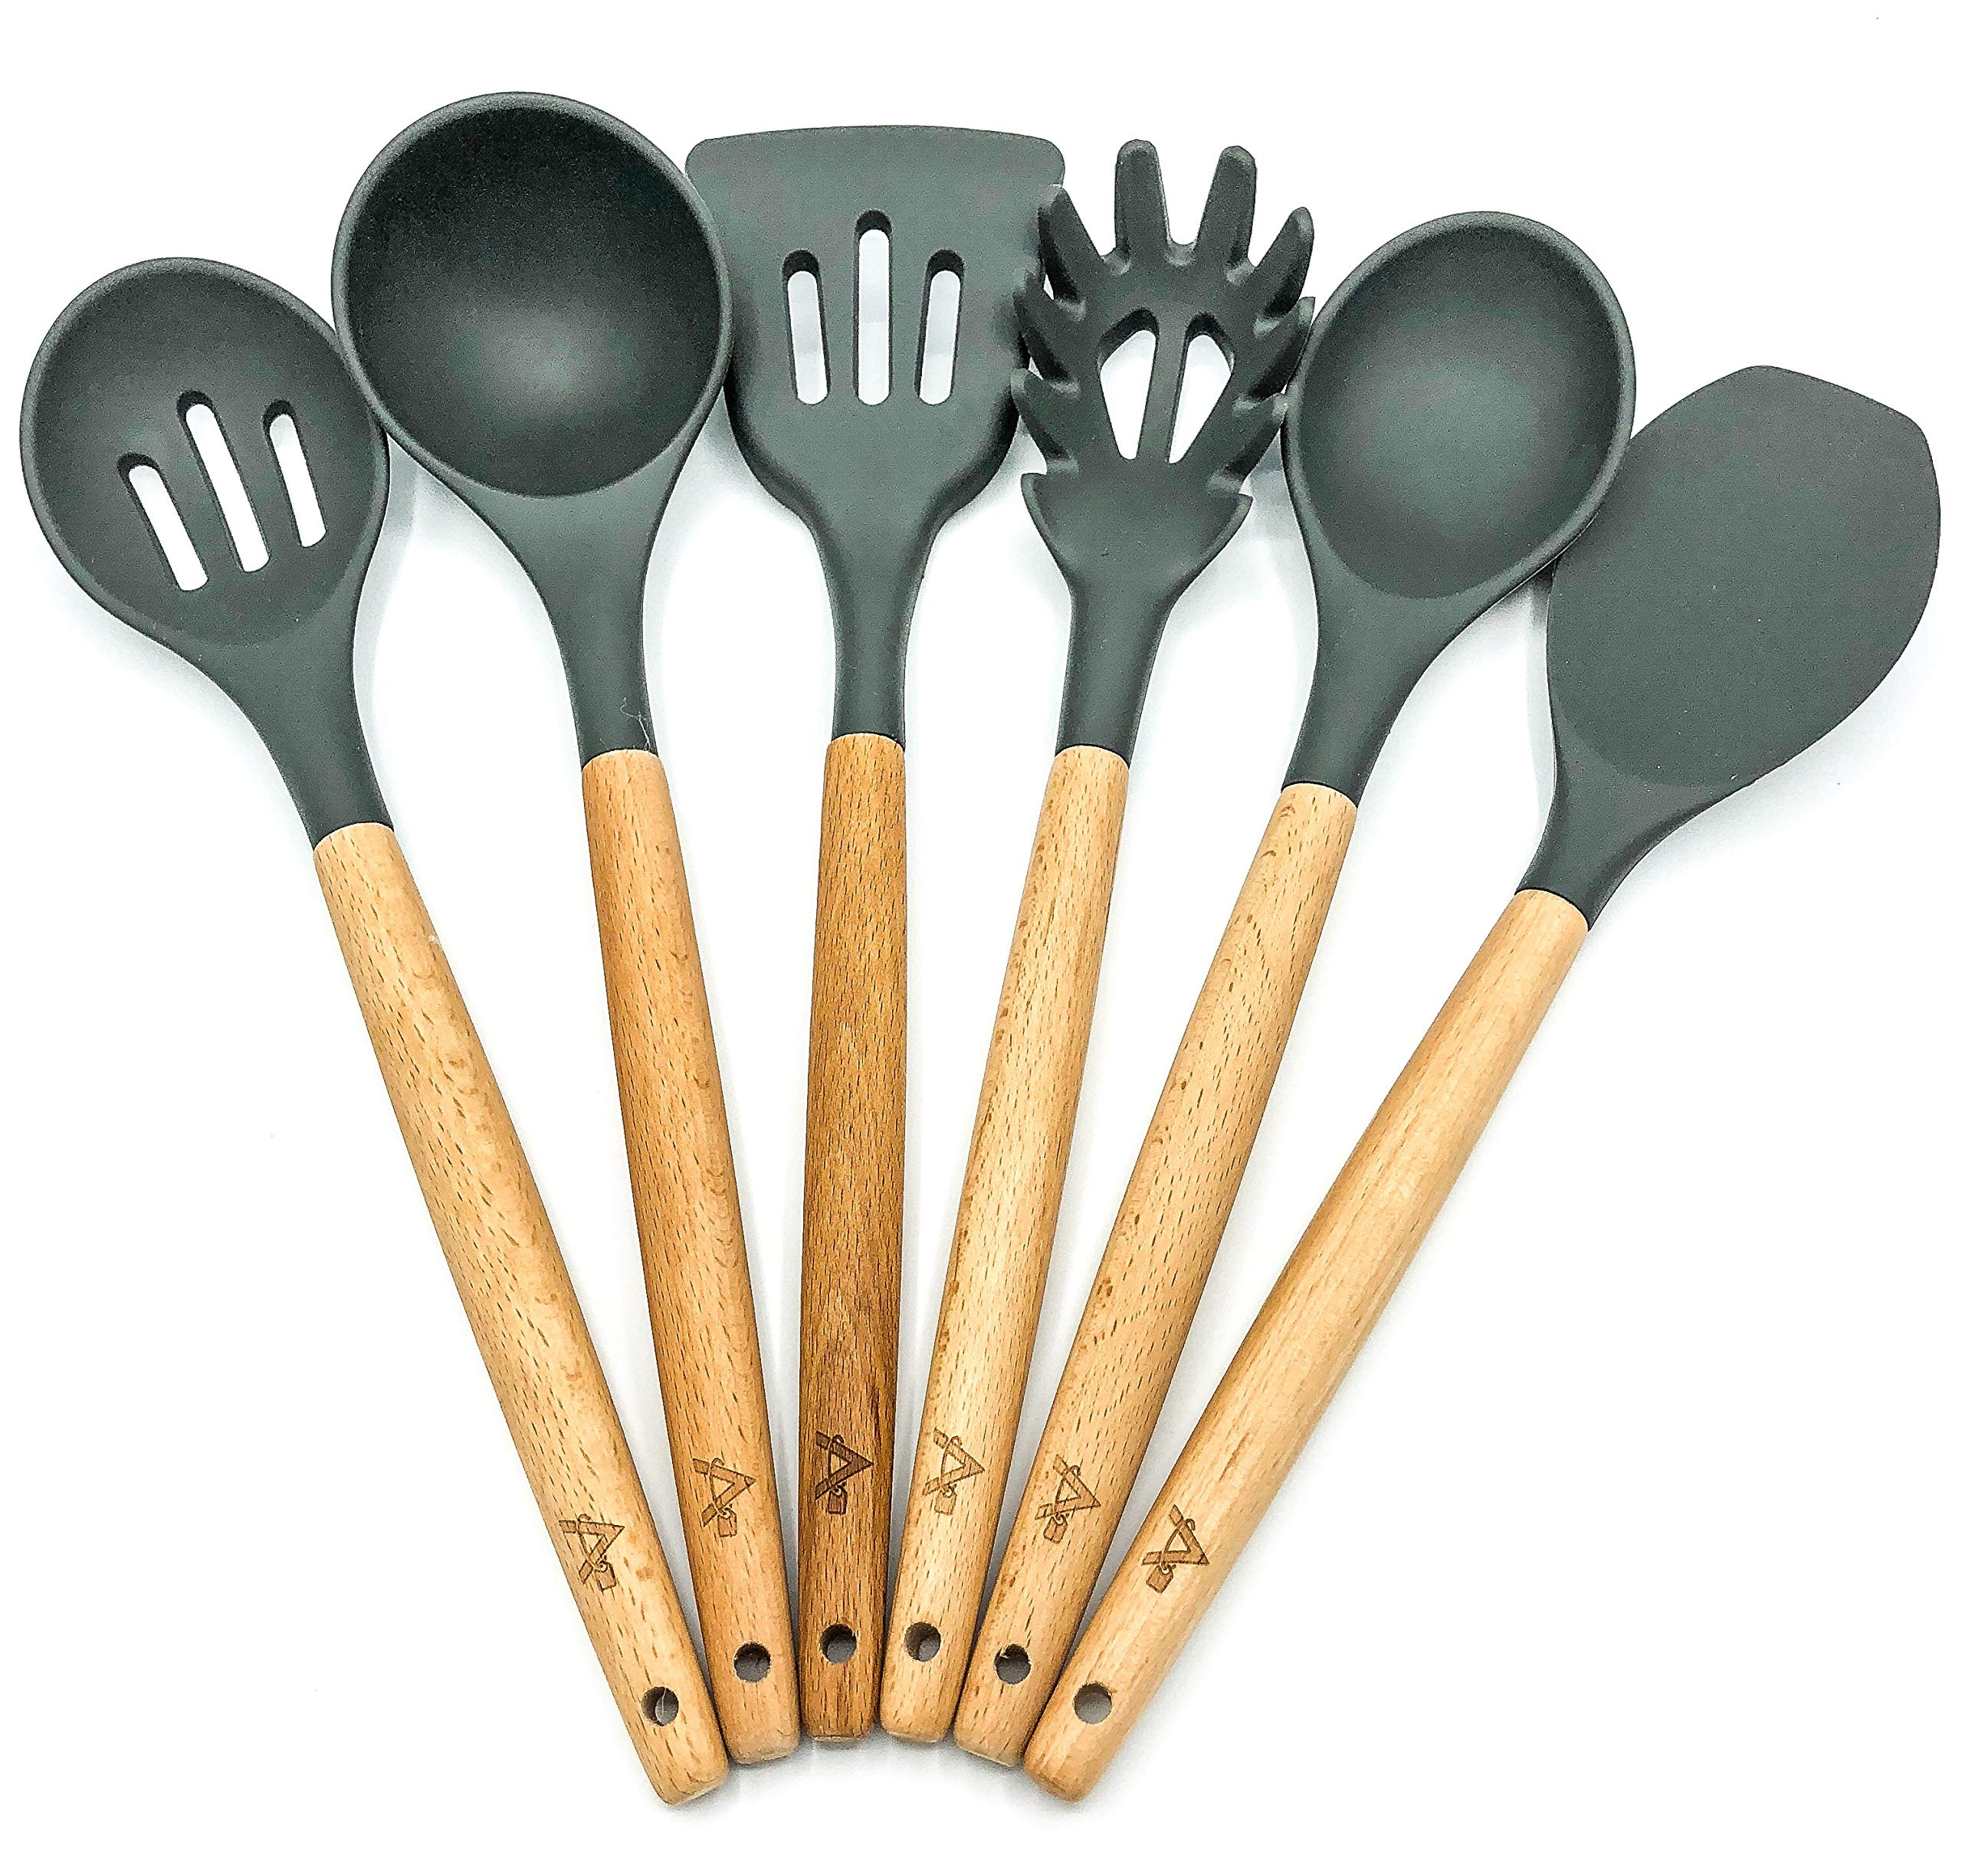 AMRON817 - GREY Kitchen Utensil Set - Cooking Utensils - FDA Certified - Premium Quality - 6 Piece Set - GREY Silicone and Beech Wood